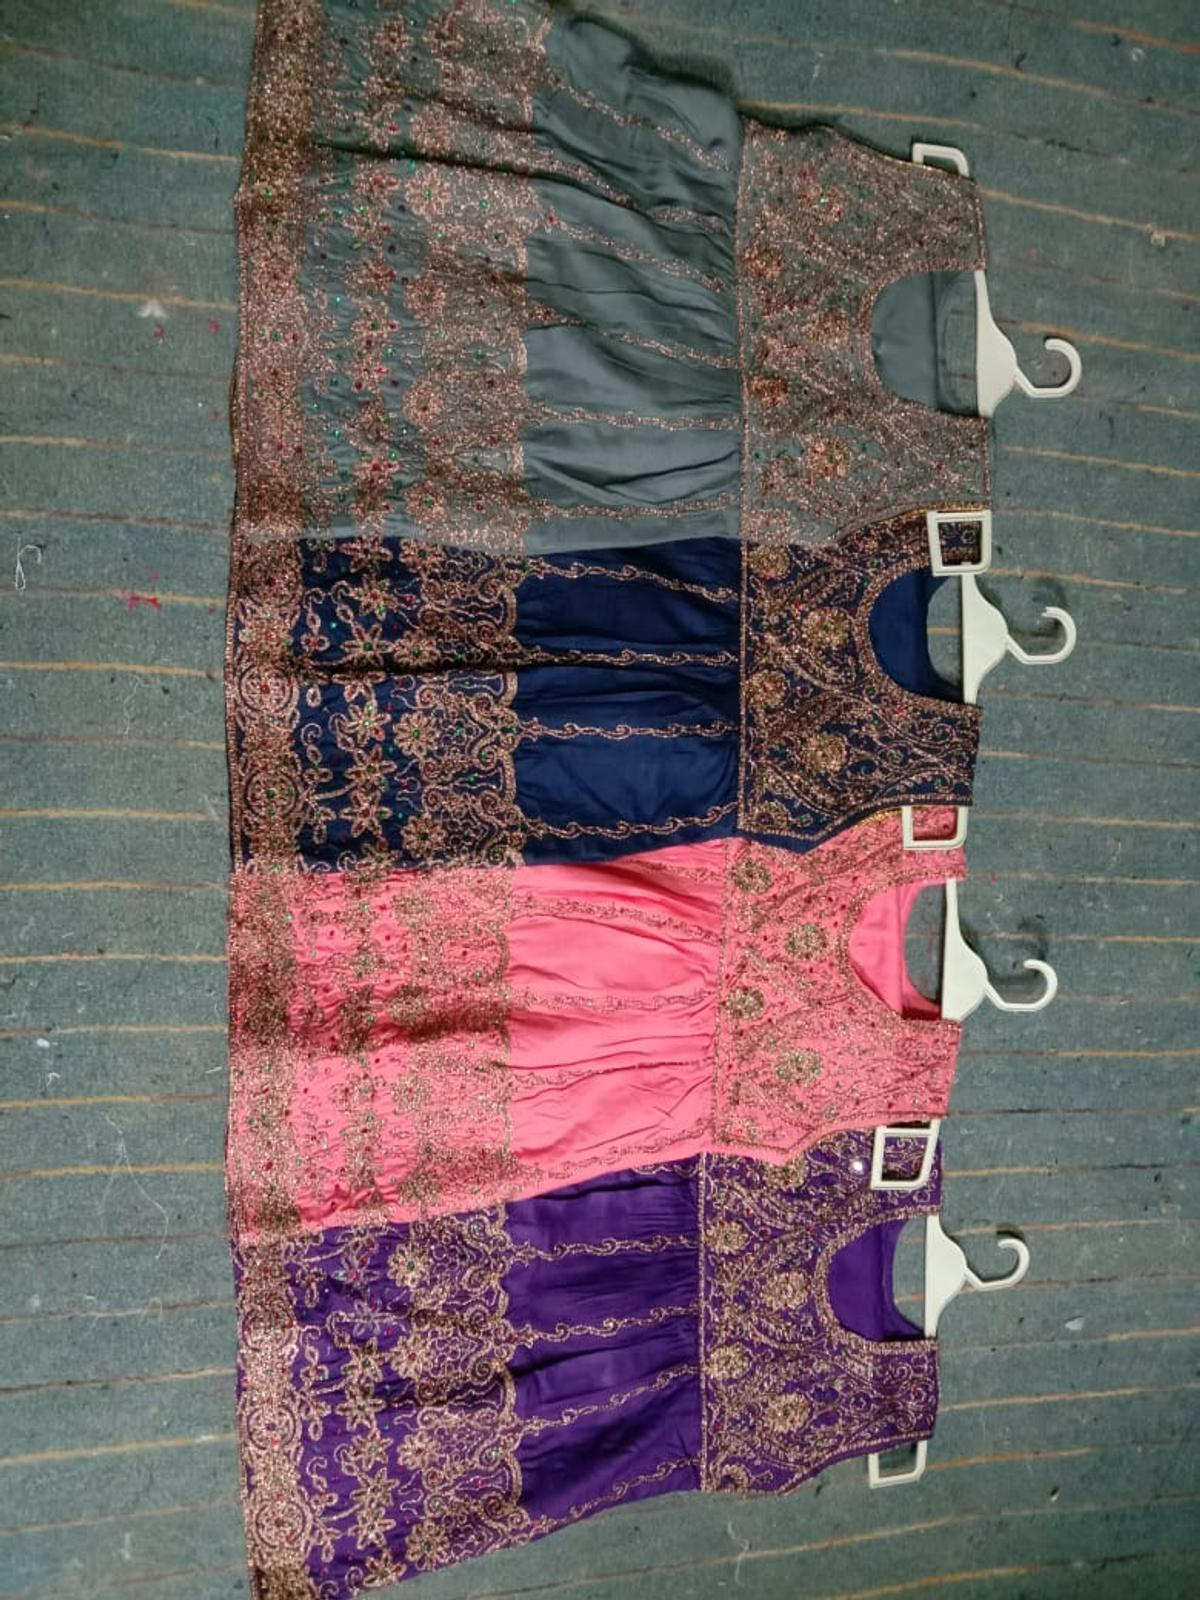 girl suits on Ahmed's collection's Burnley bb101xh price only £12. 00 each suit .07462080493